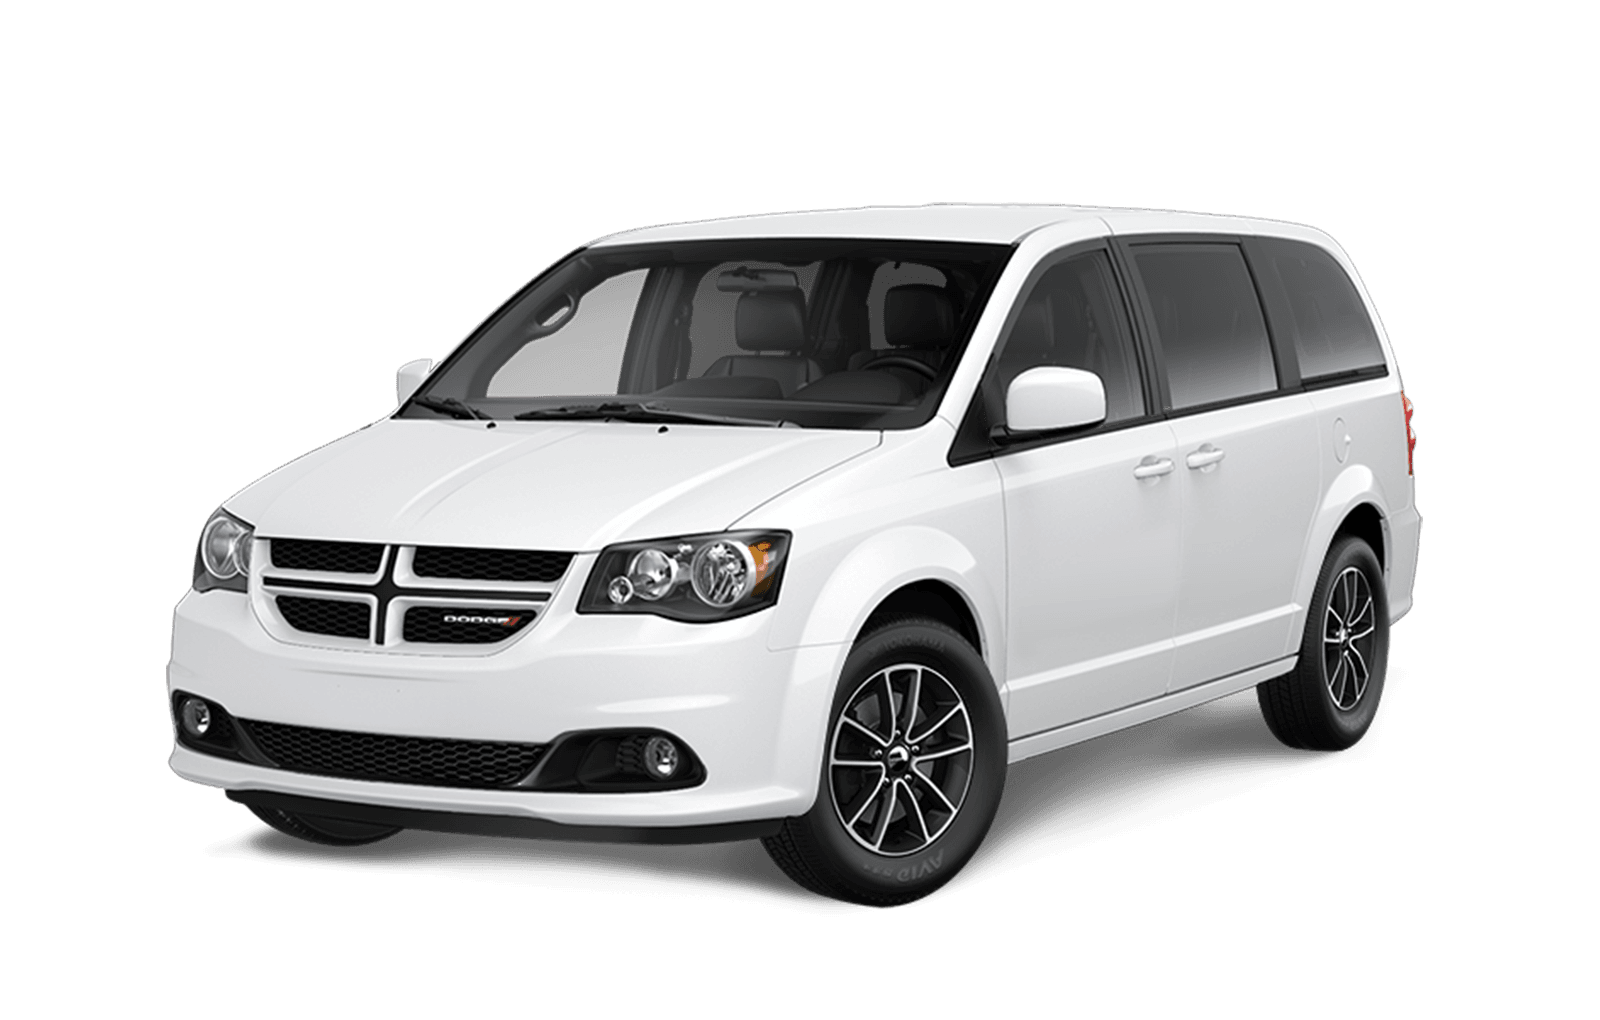 60 The 2020 Dodge Grand Caravan Gt New Concept by 2020 Dodge Grand Caravan Gt